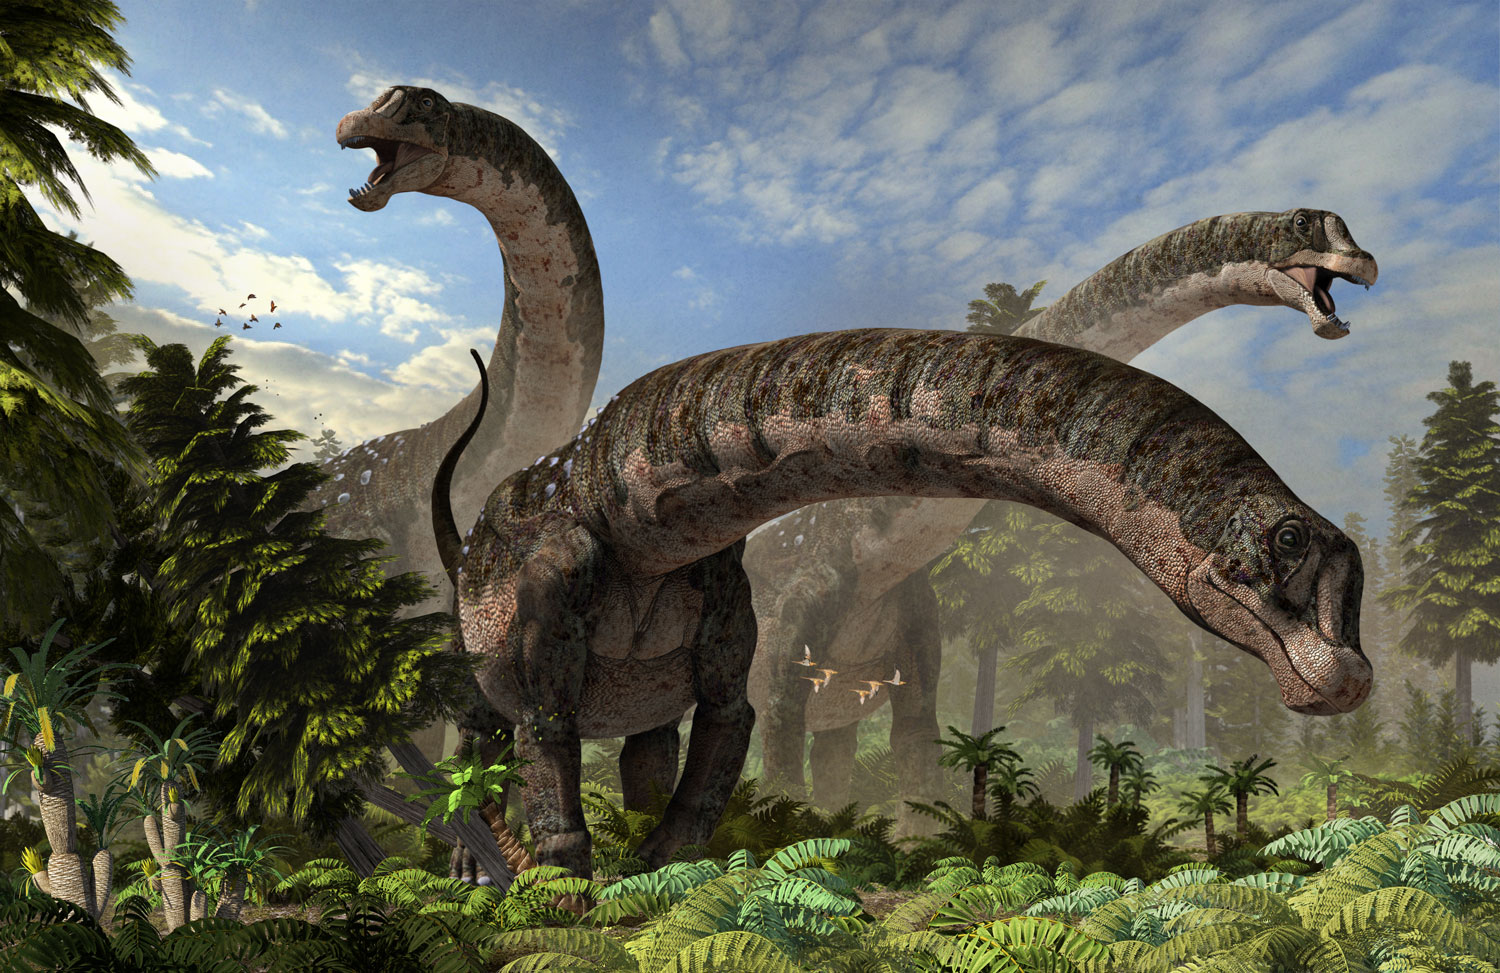 New Stars in the Dinosaur World, PM Magazin April 2015. Dreadnoughtus schrani, feature cover. Art by Román García Mora.